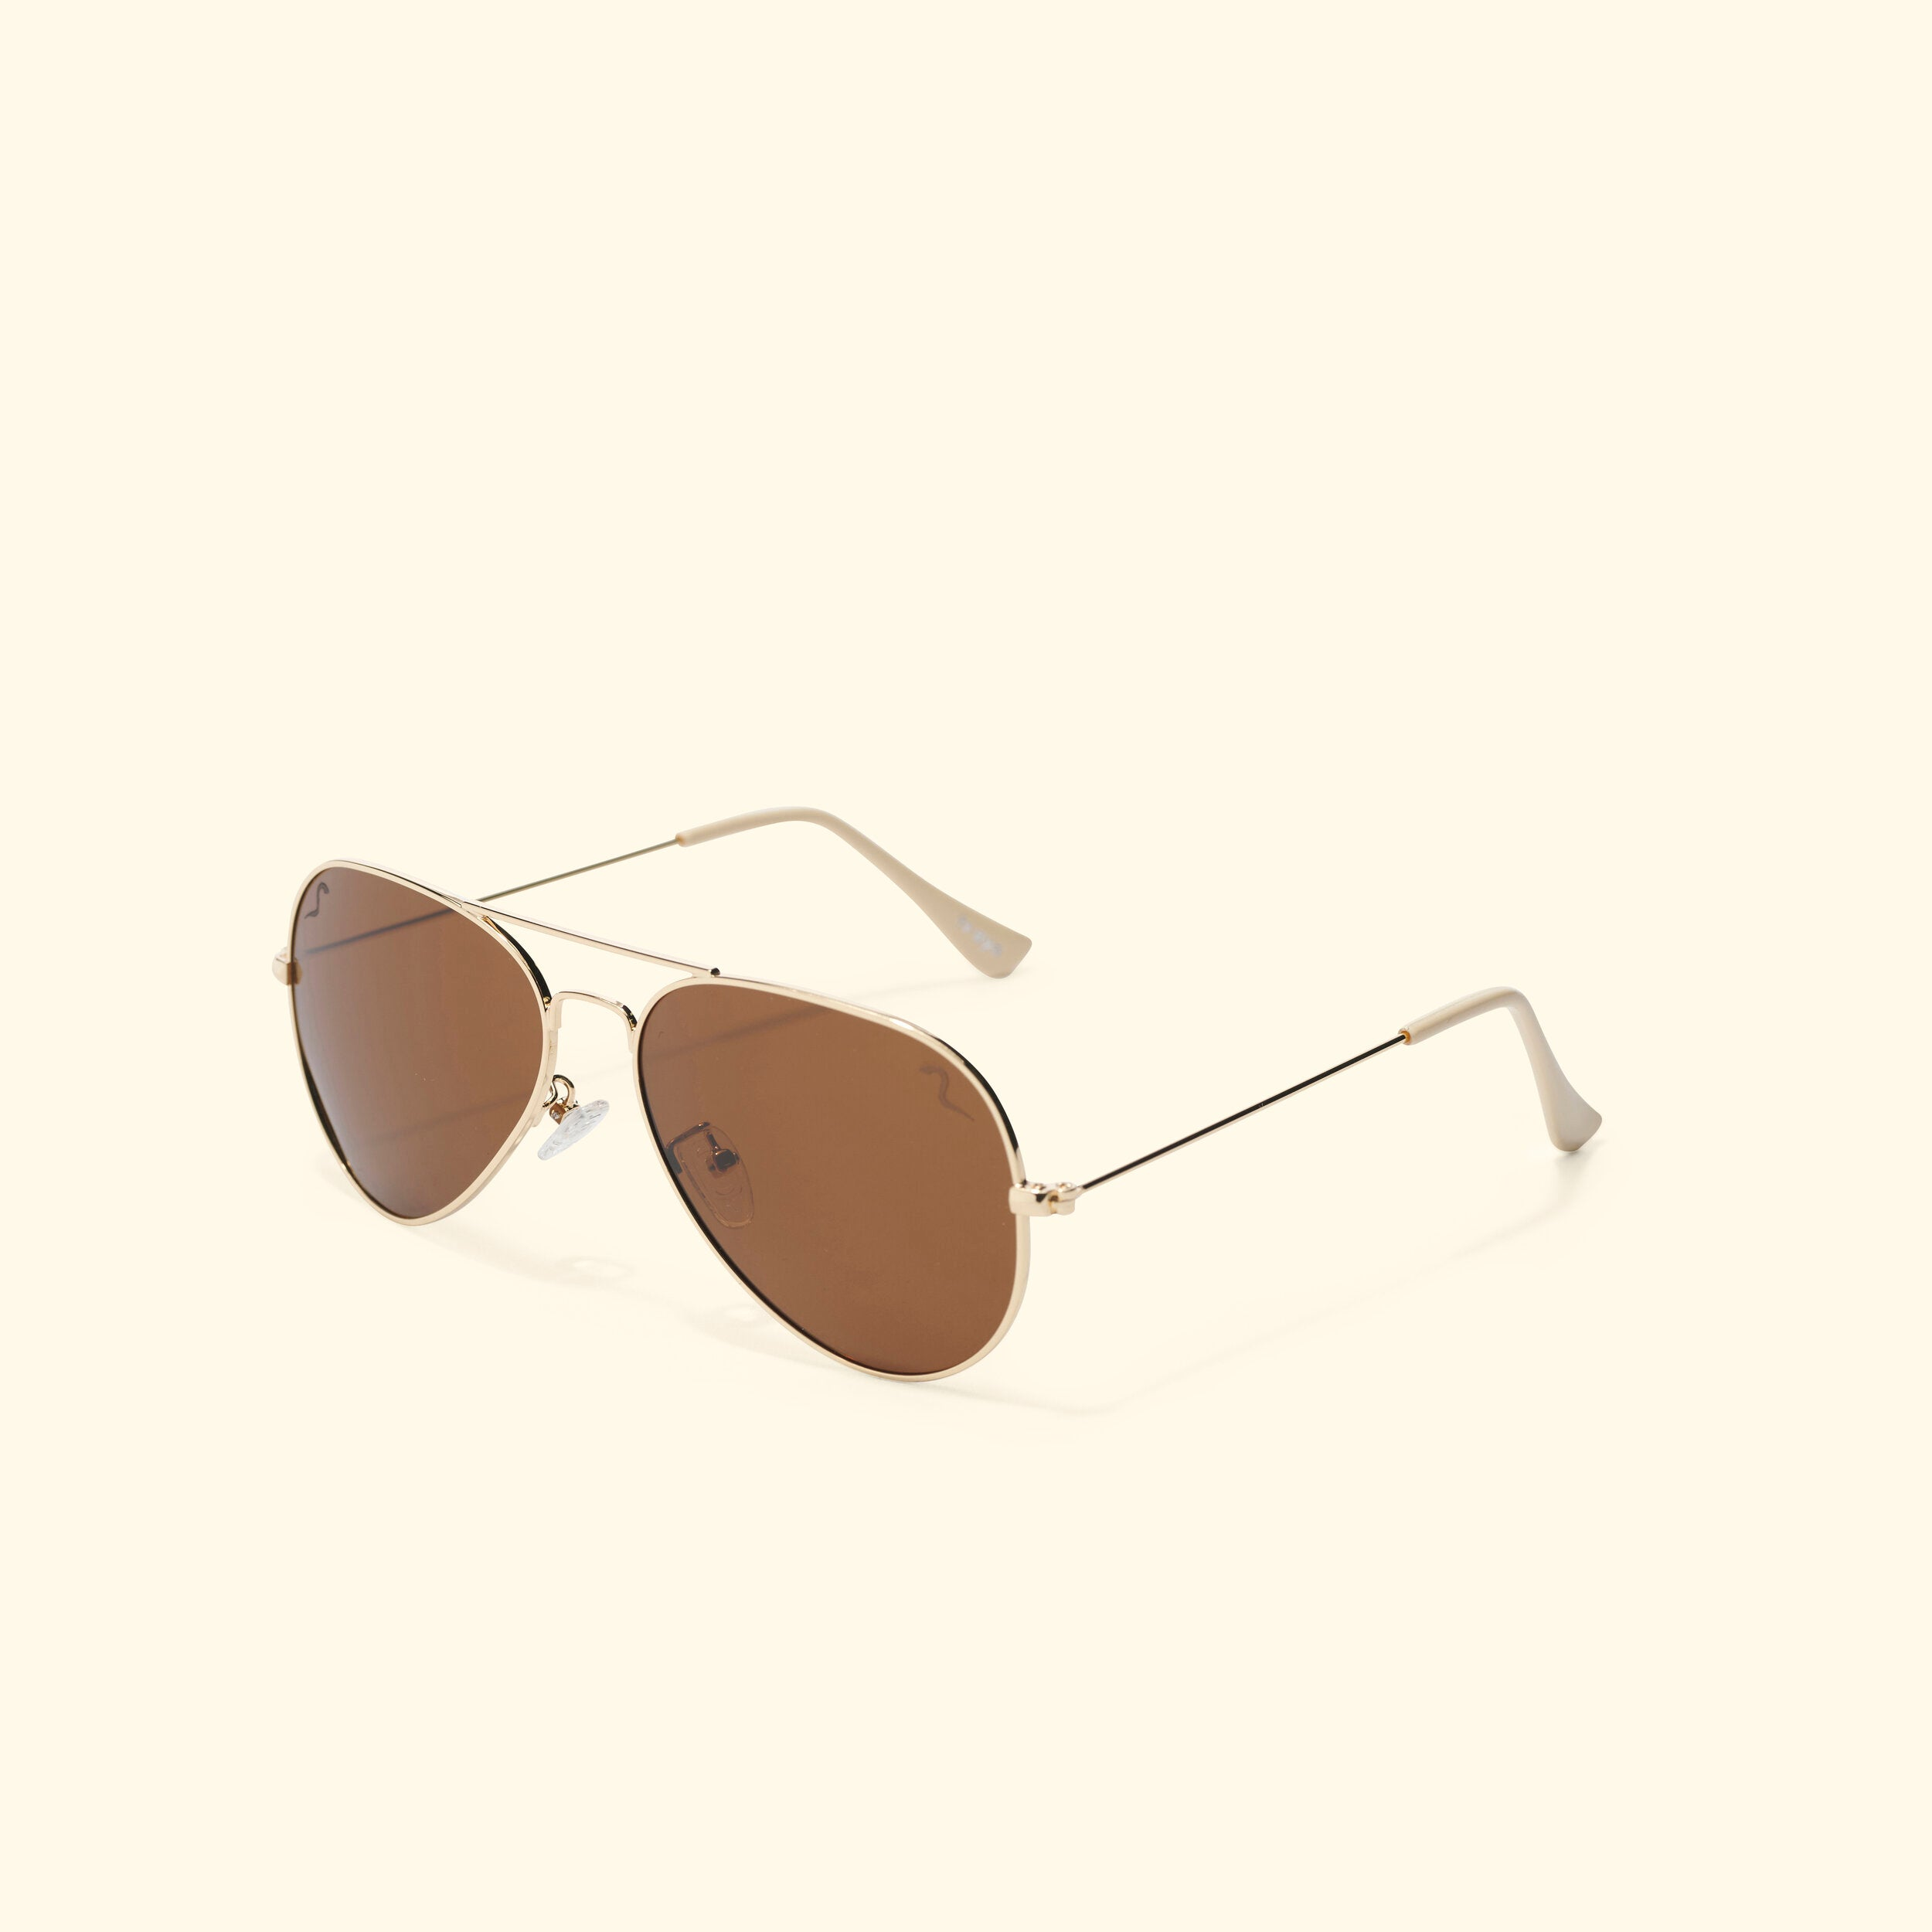 TV EYE Aviators (Gold w/Polarized Brown Lense)